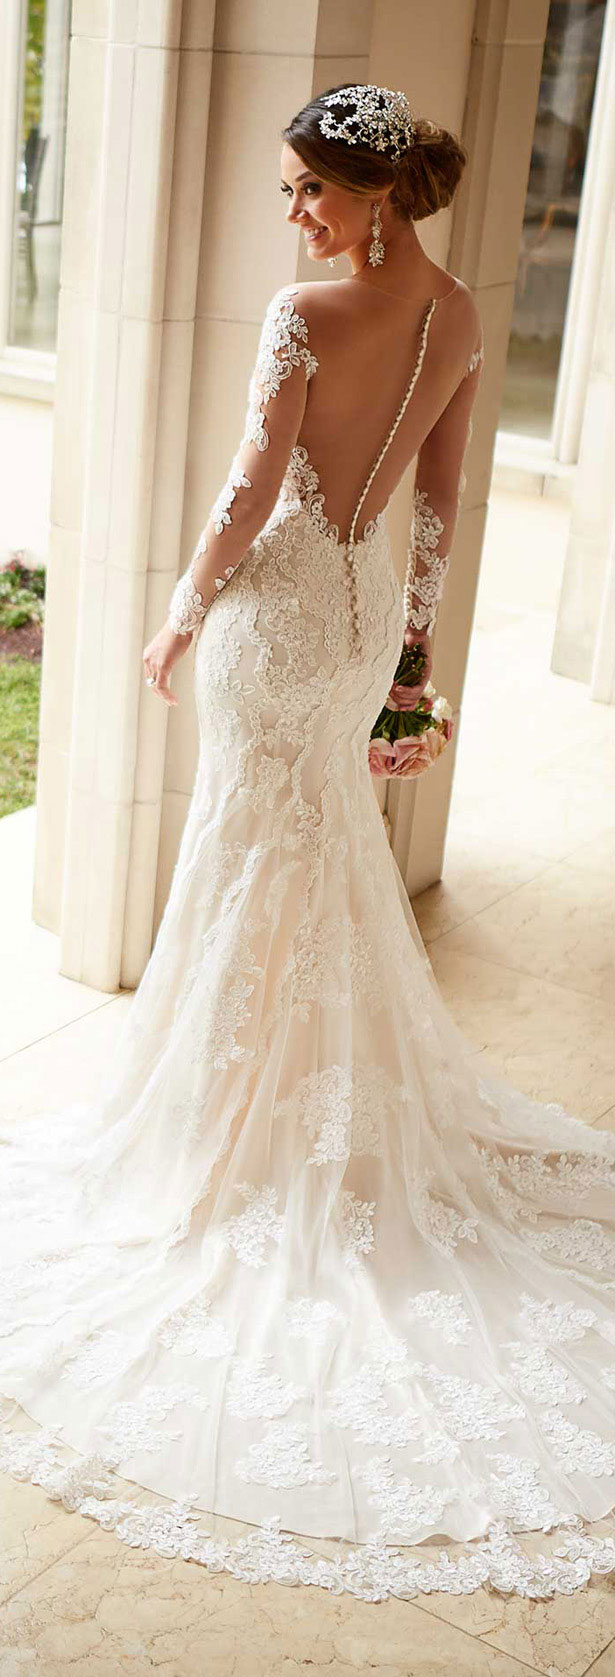 Stella York spring 2016 wedding dress with long lace sleeves